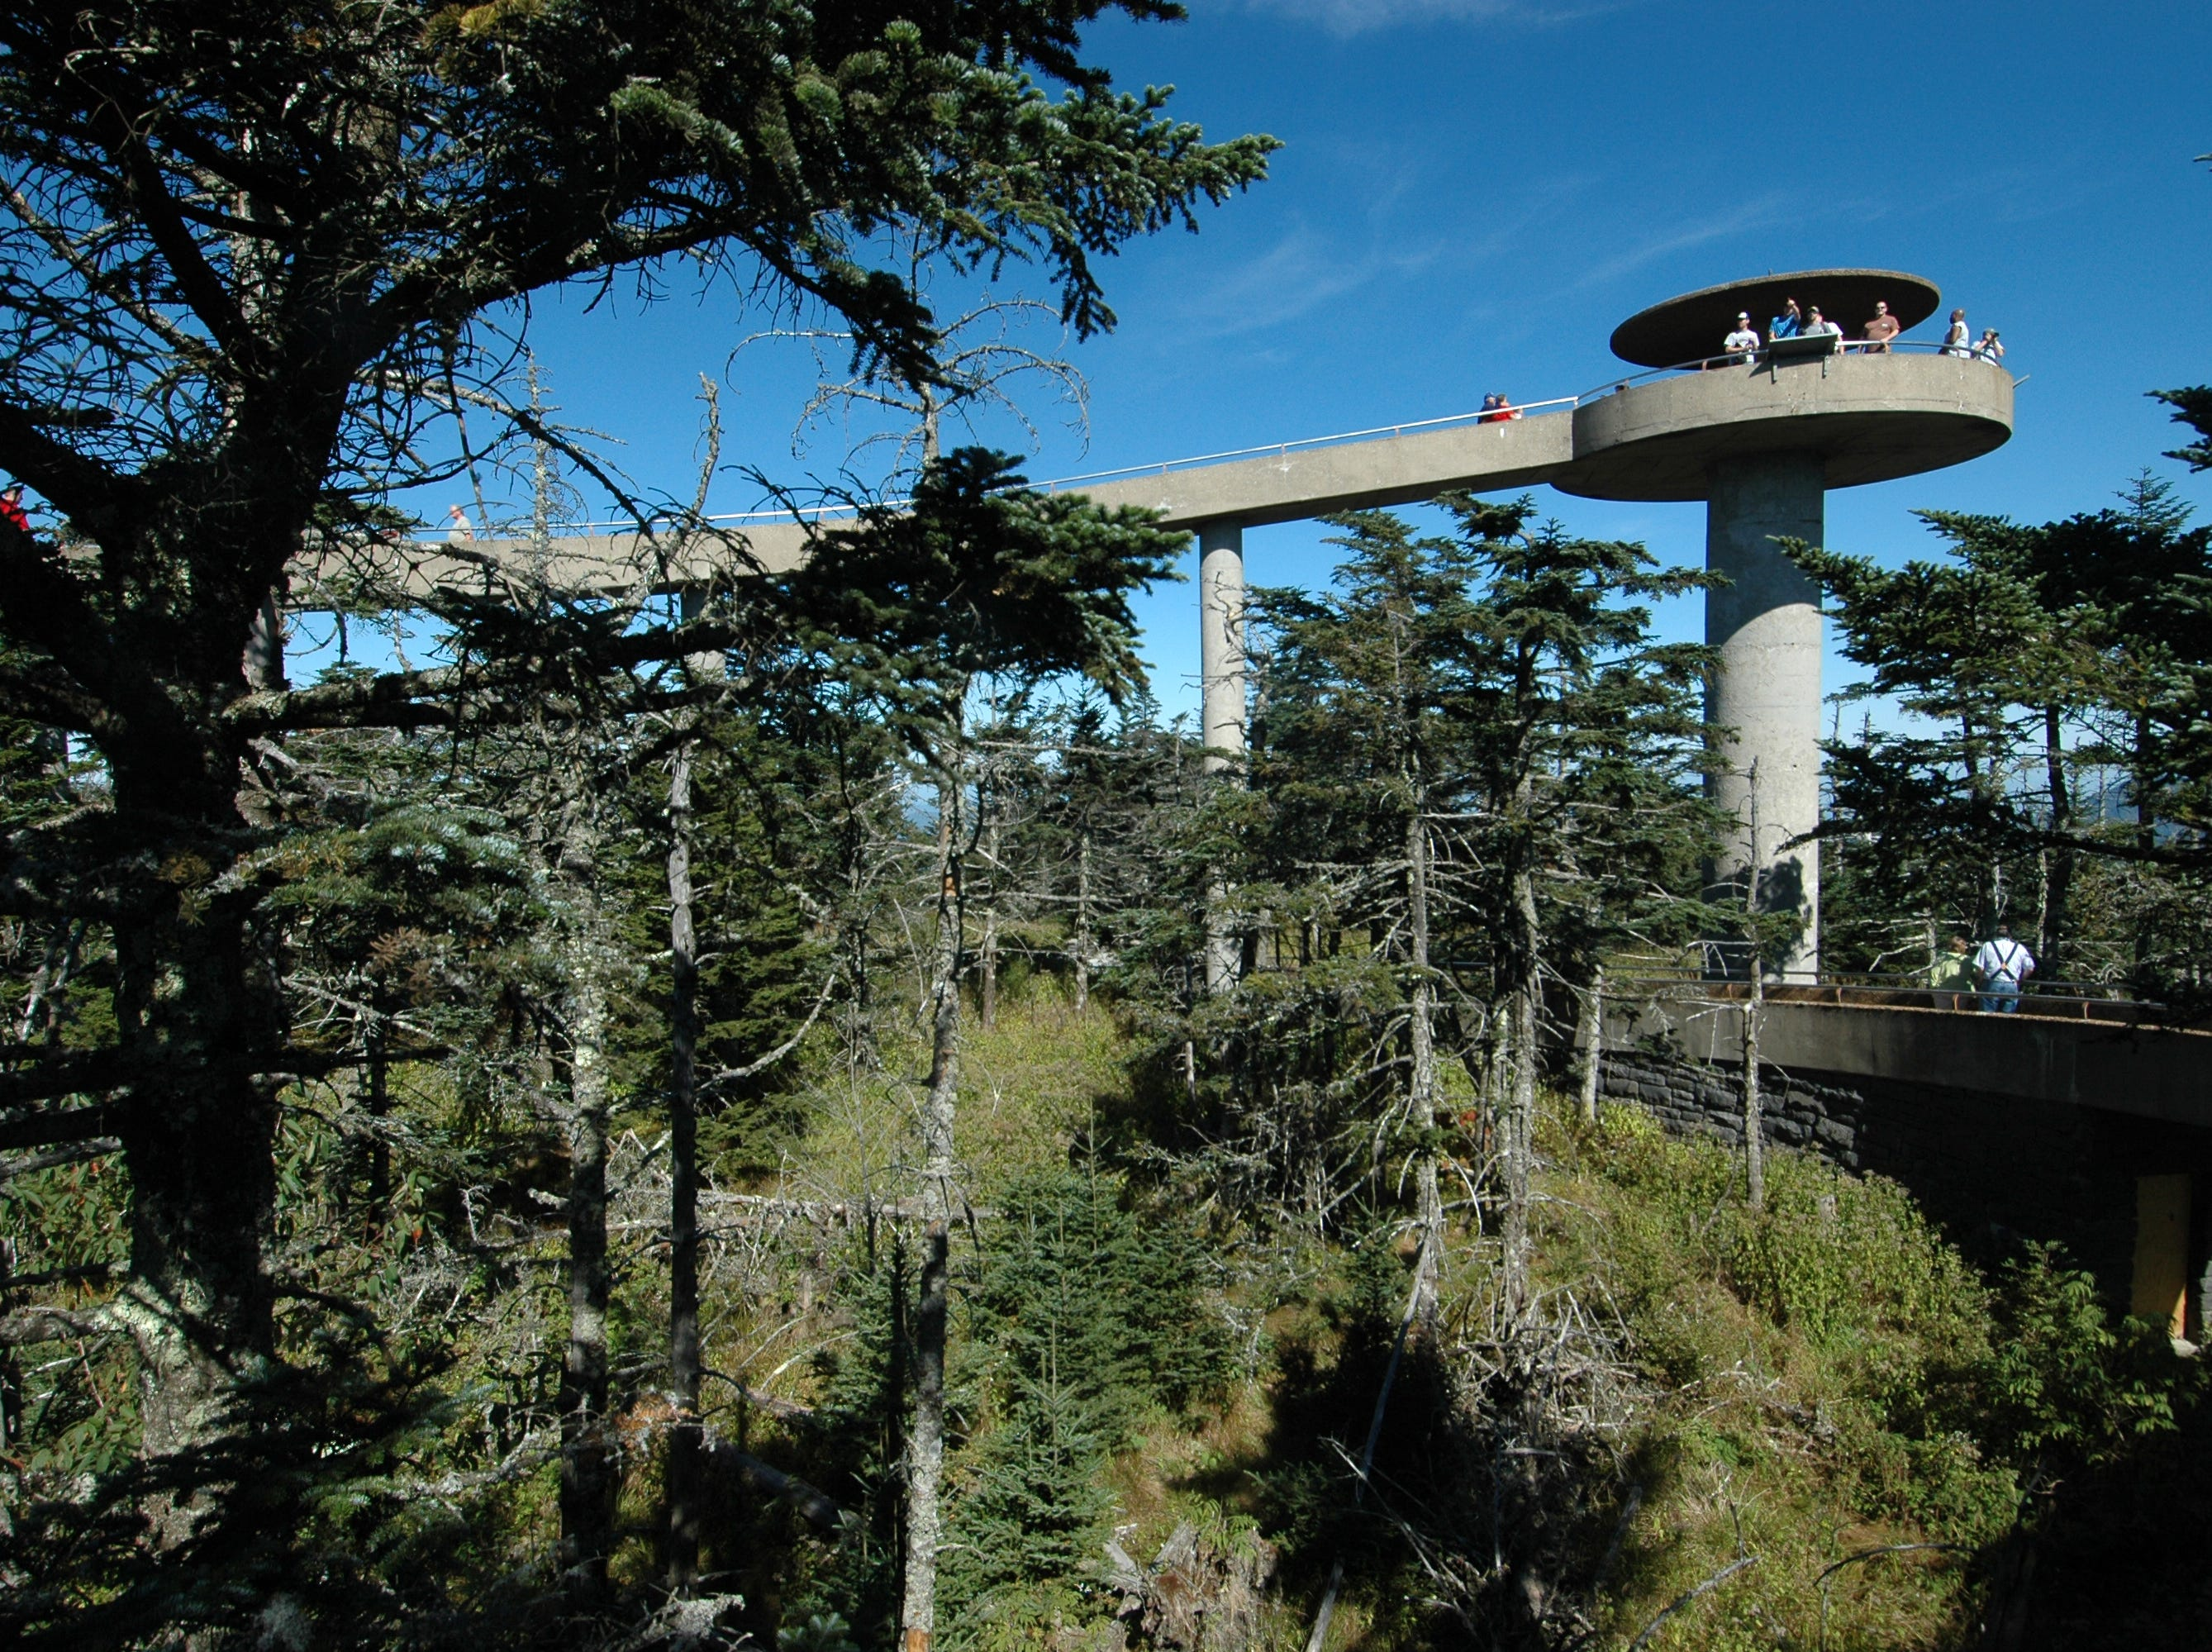 The observation platform at Clingmans Dome in the Great Smoky Mountains National Park provides visitors an unequaled 360-degree view of the park and the region. At 6,643 feet above sea-level, it is the highest point in the park and the third-highest peak east of the Mississippi. (Tracey Trumbull/News Sentinel)